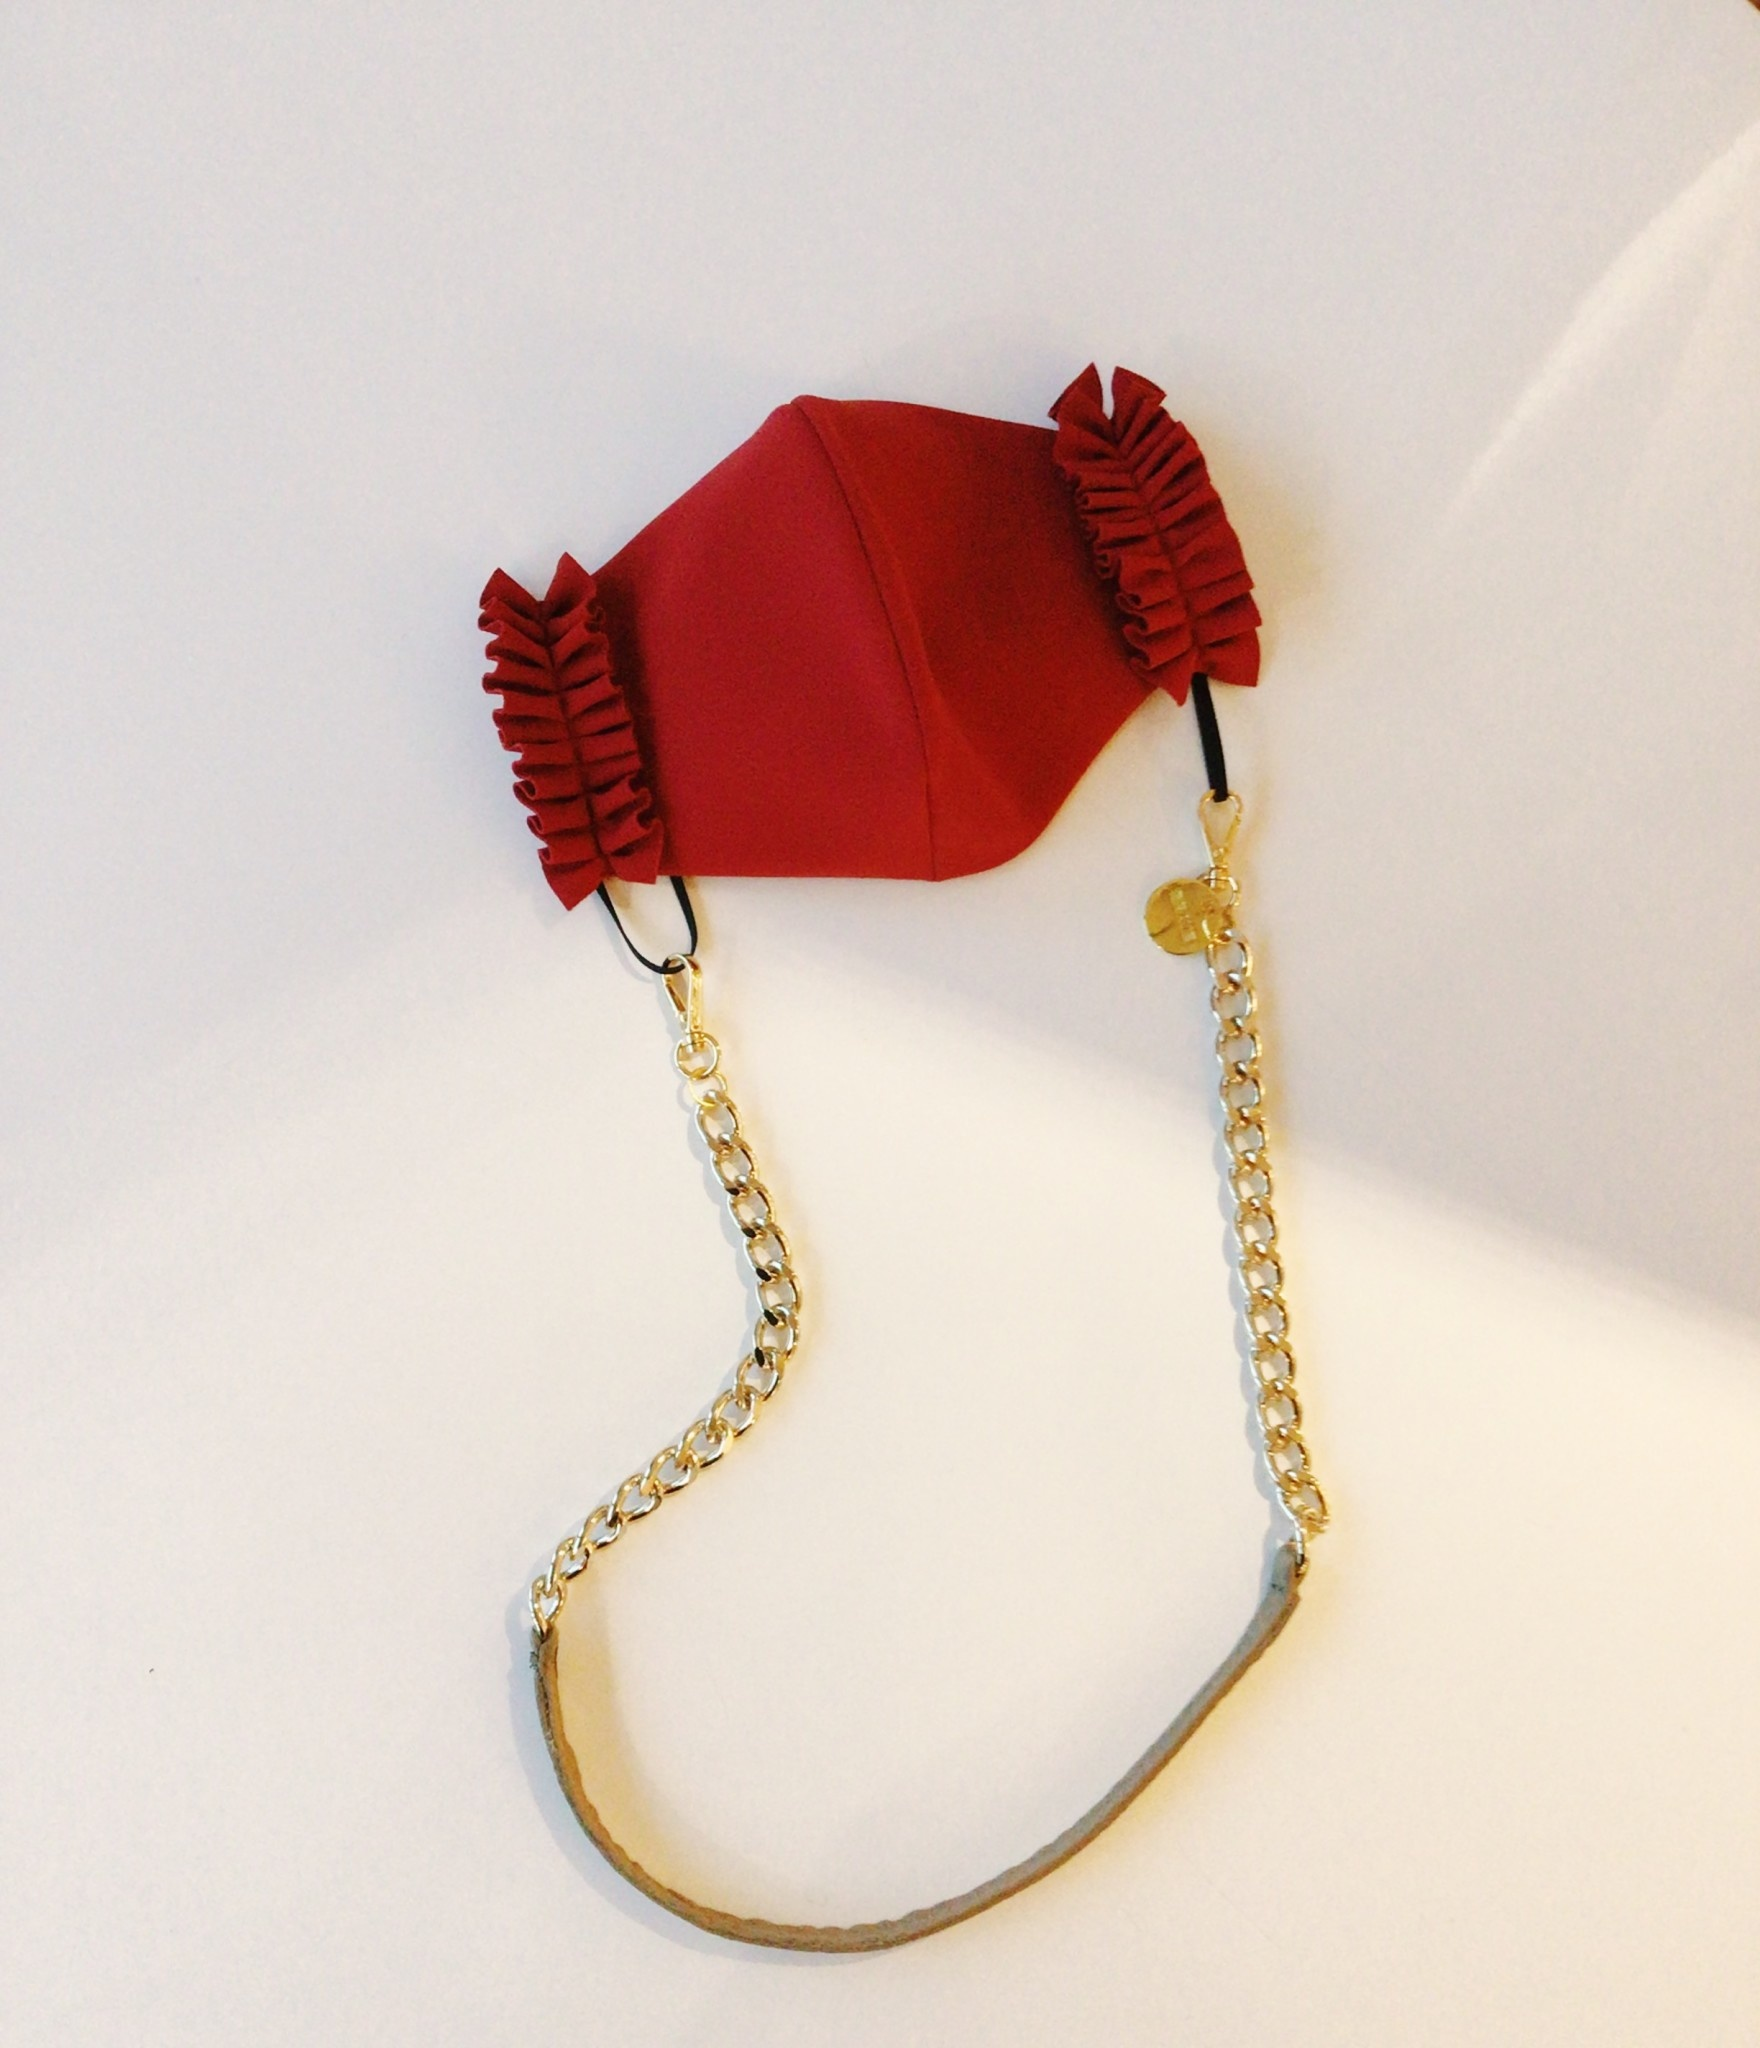 Brave Leather Kaelin Mask Chain Platypus & Gold